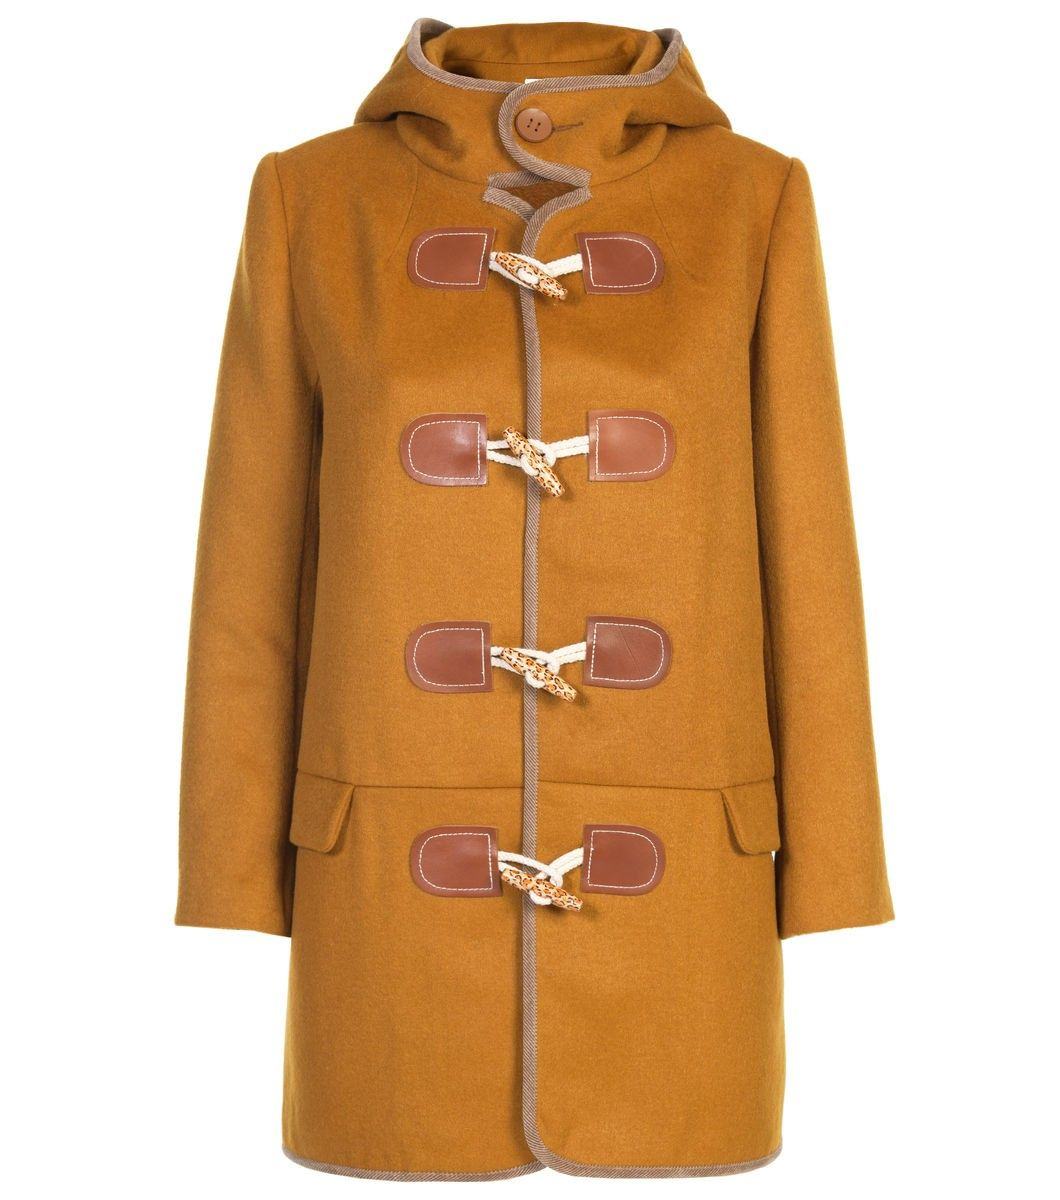 Gorman Online :: Arabian Nights Duffle Coat - Jackets and Coats ...